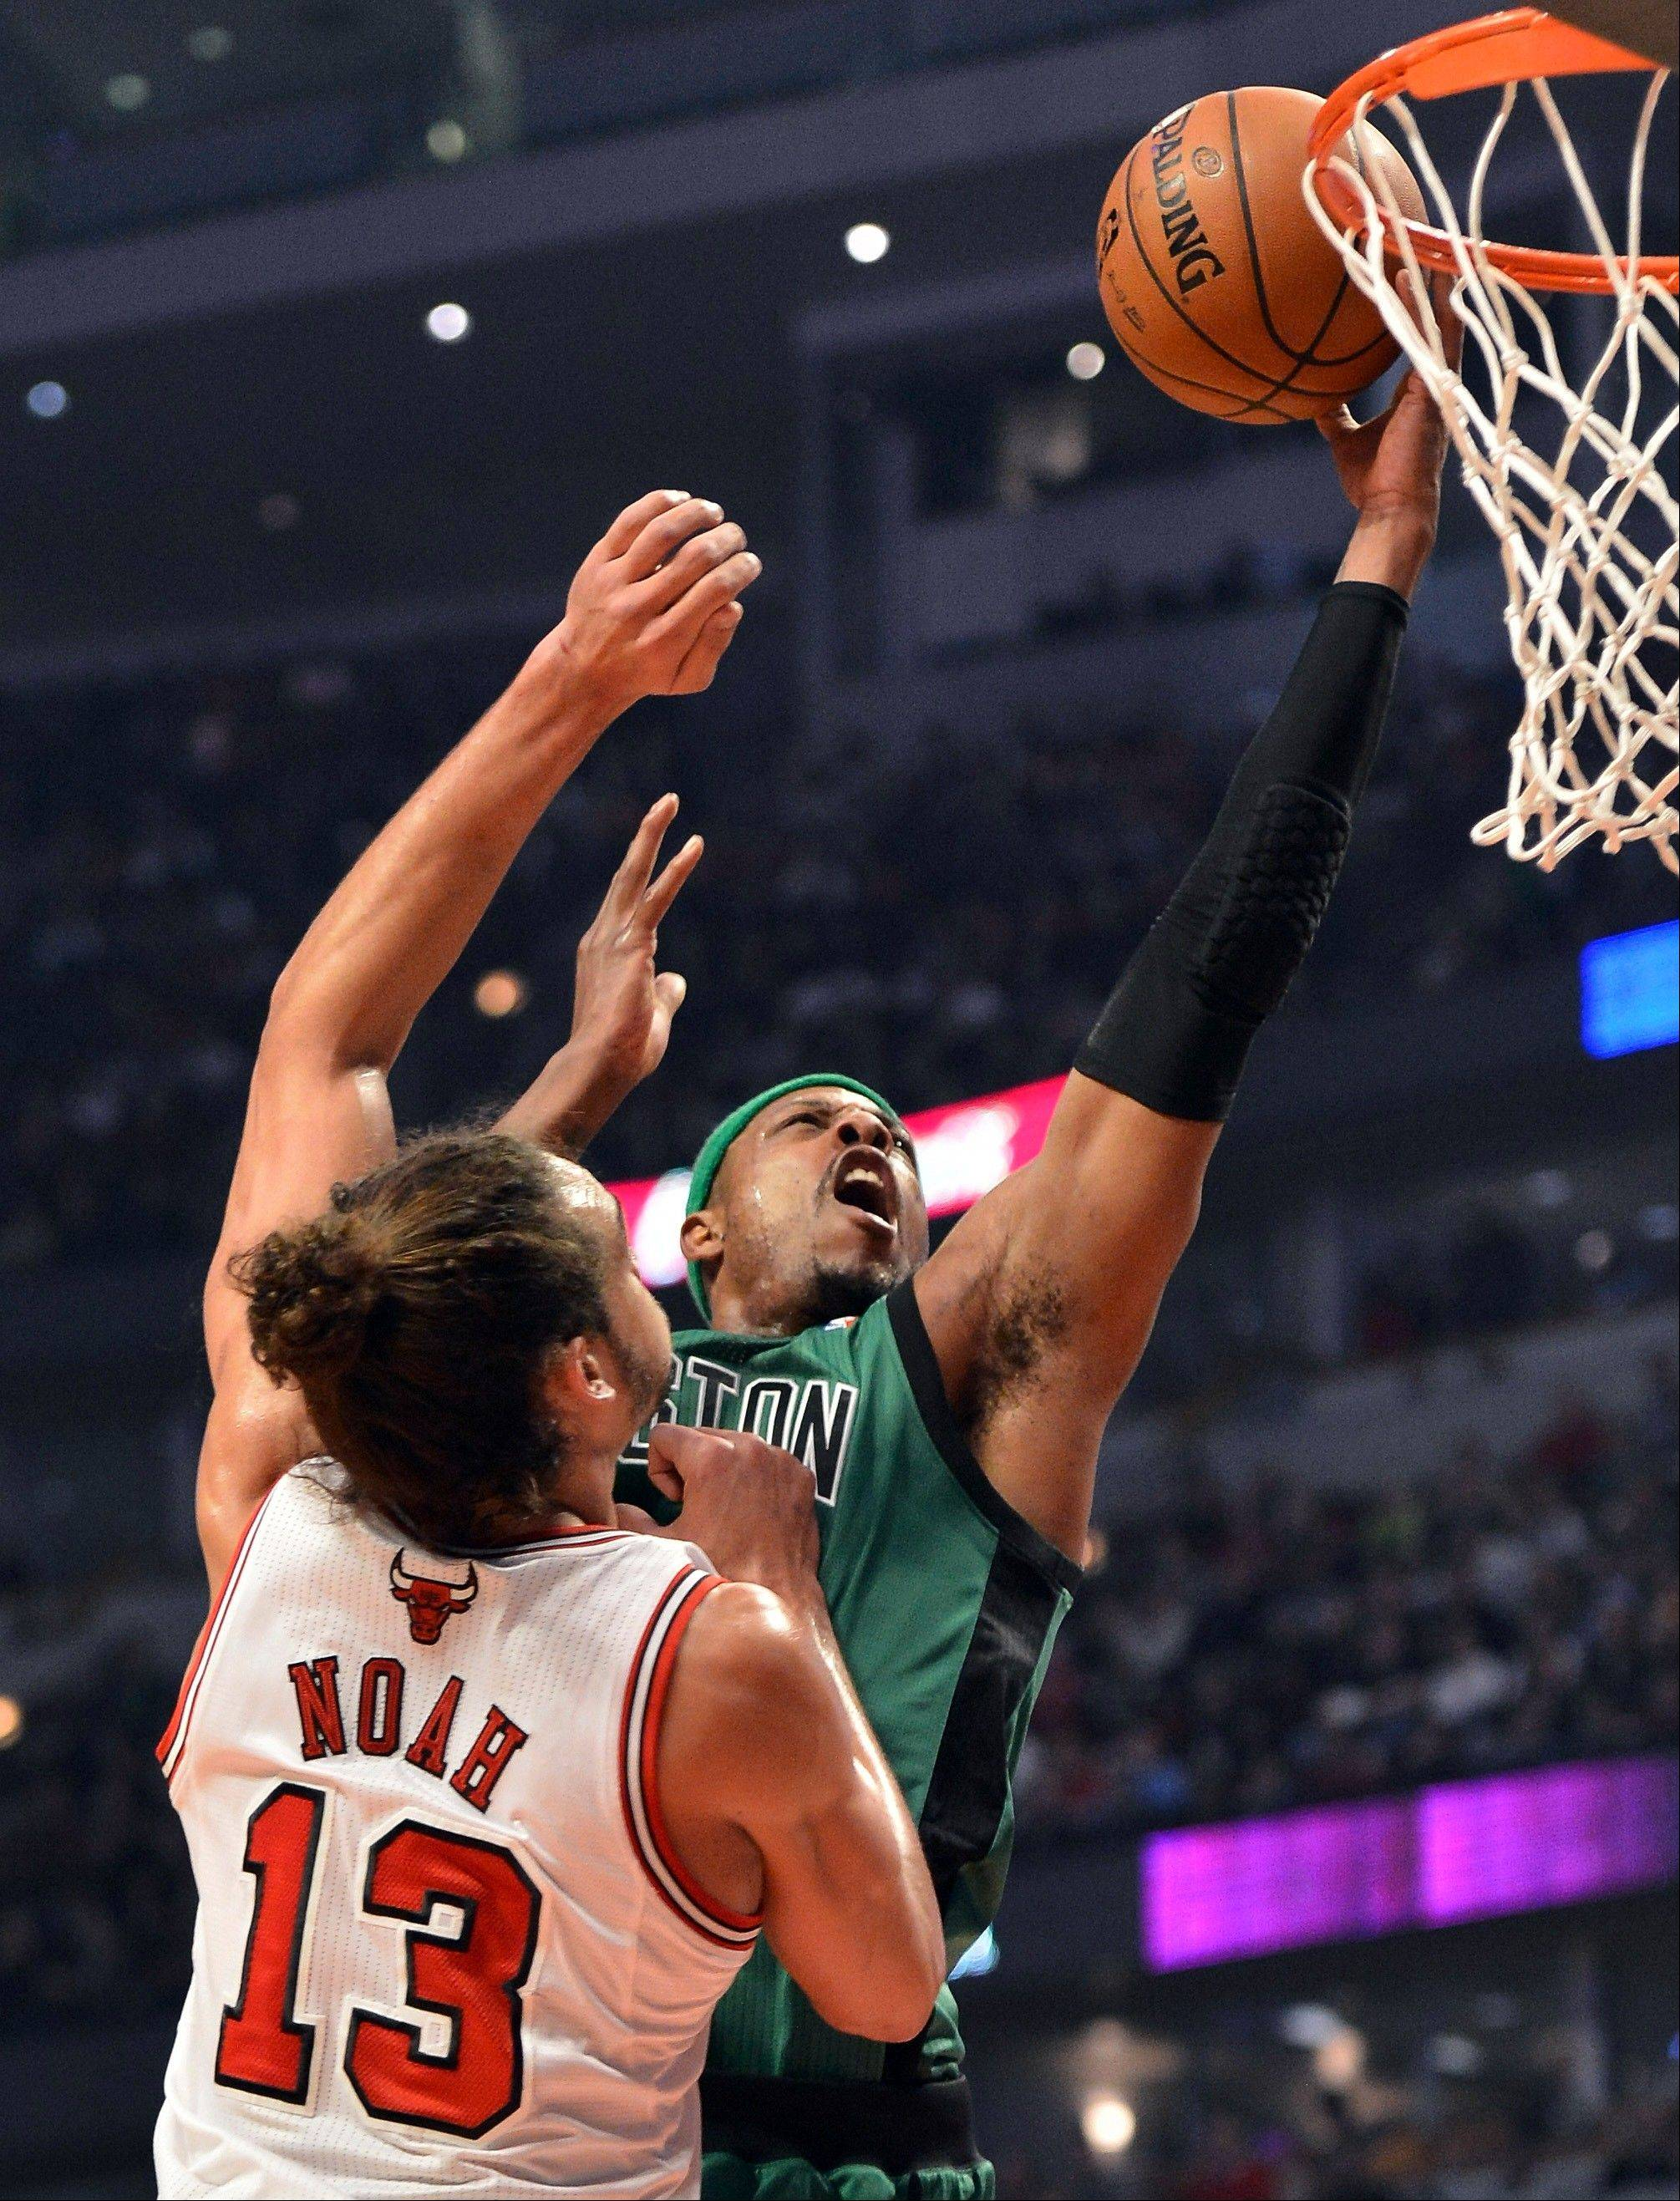 Bulls center Joakim Noah defends the Celtics' Paul Pierce as Pierce goes up for a layup Tuesday night. Noah finished with 11 points, 13 rebounds and 10 assists.